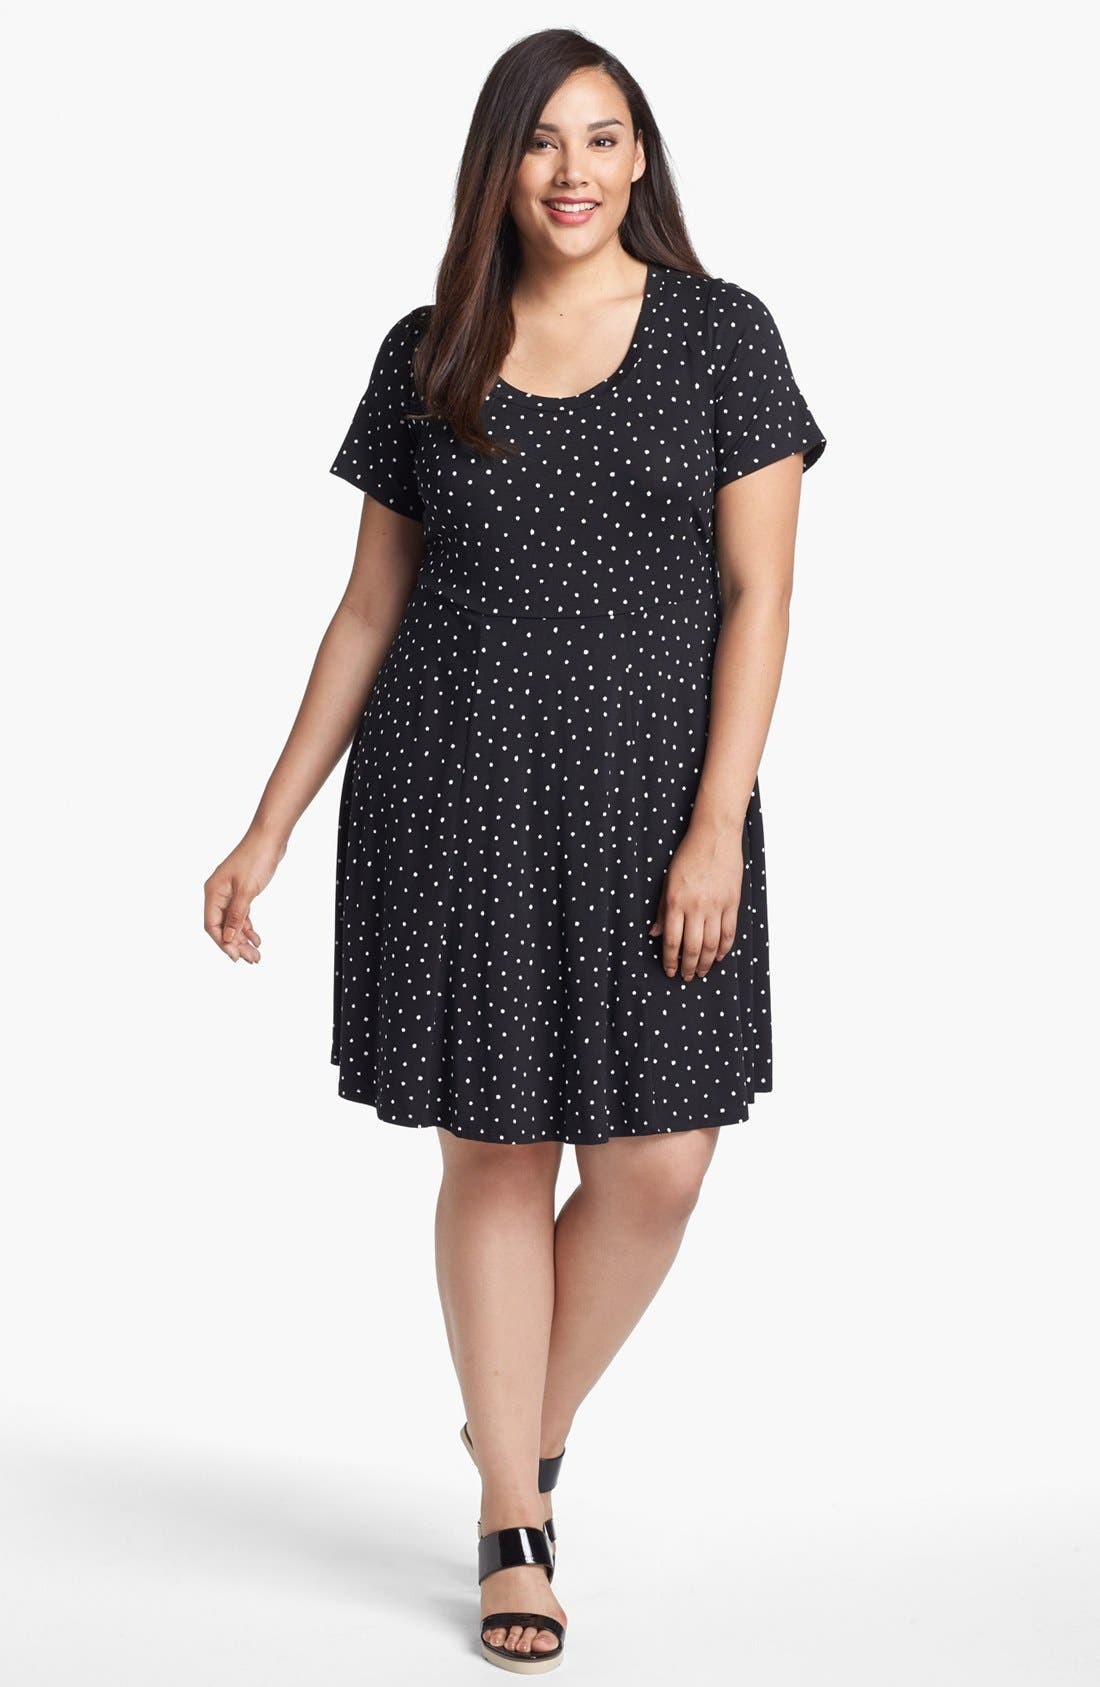 Main Image - Evans Polka Dot Skater Dress (Plus Size)